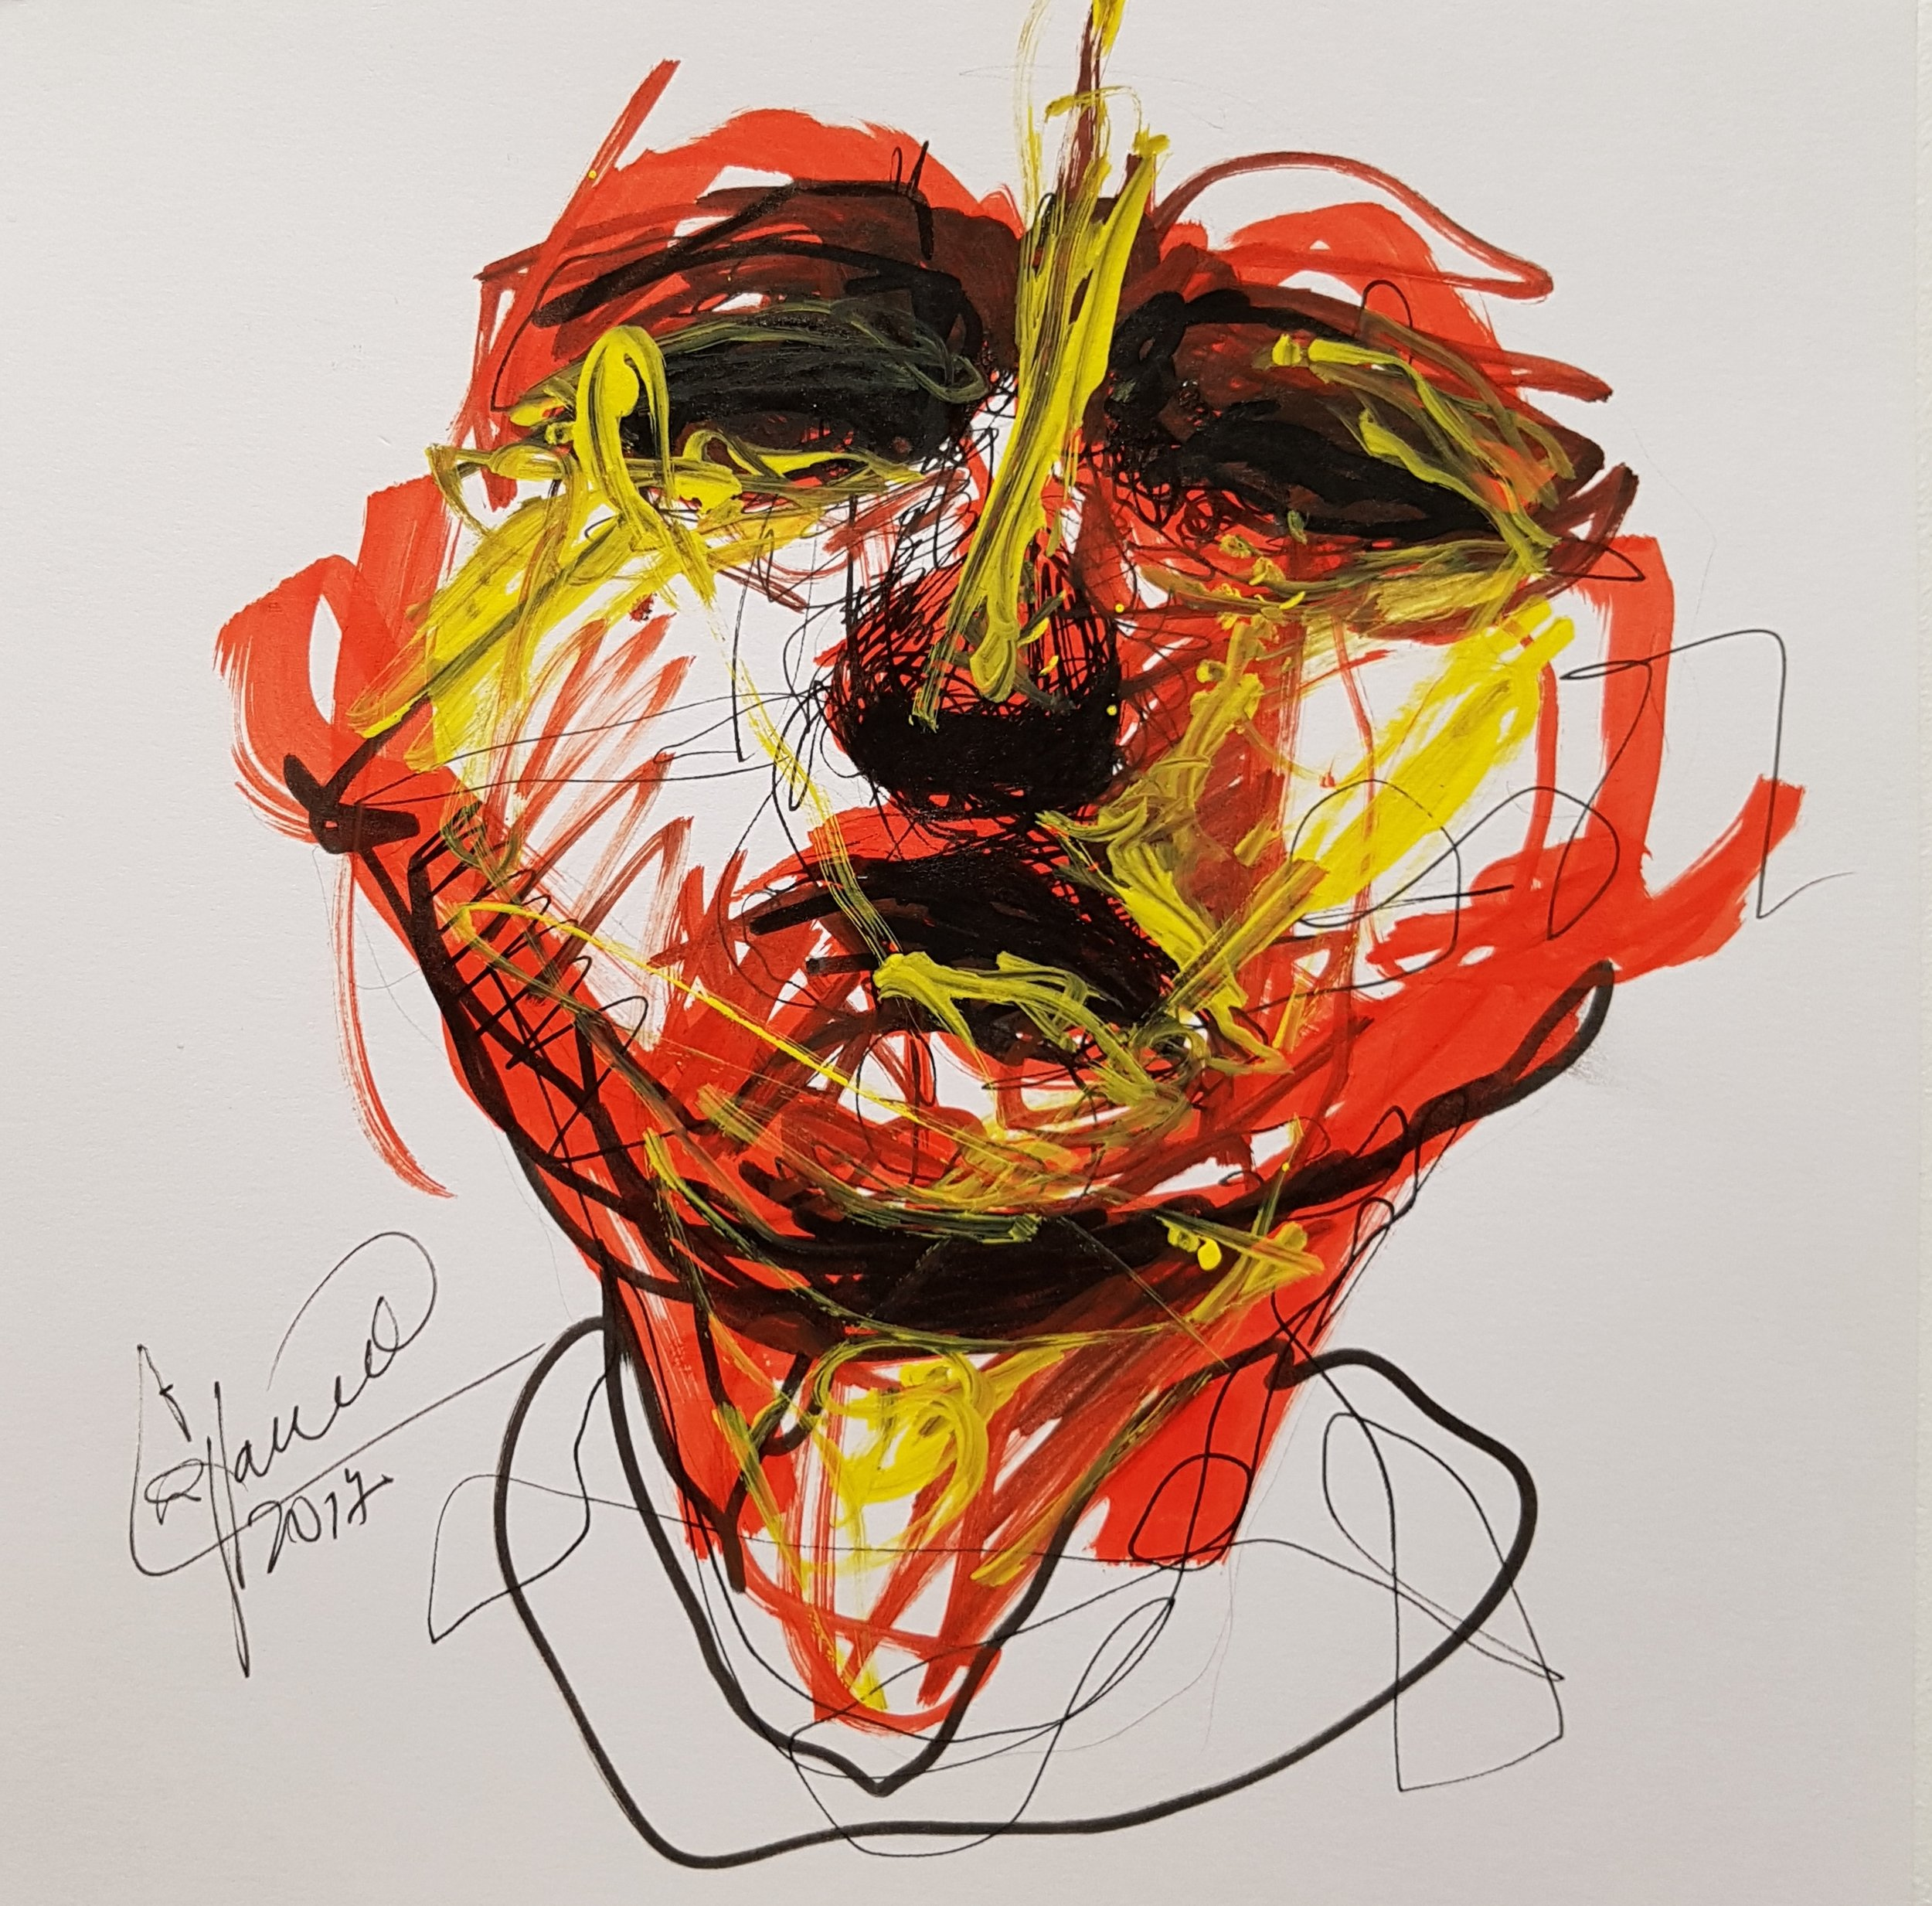 drawing of person with the head up, scketch on marker